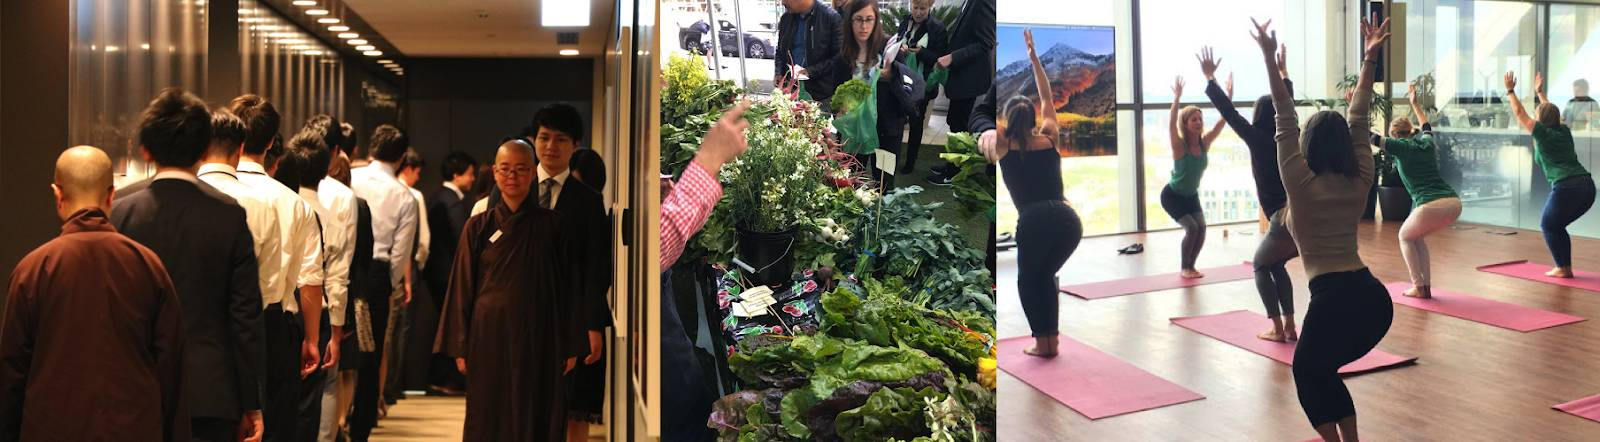 A collage of employees engaging in wellness activities including a mindfulness session, a farmer's market, and a fitness class.